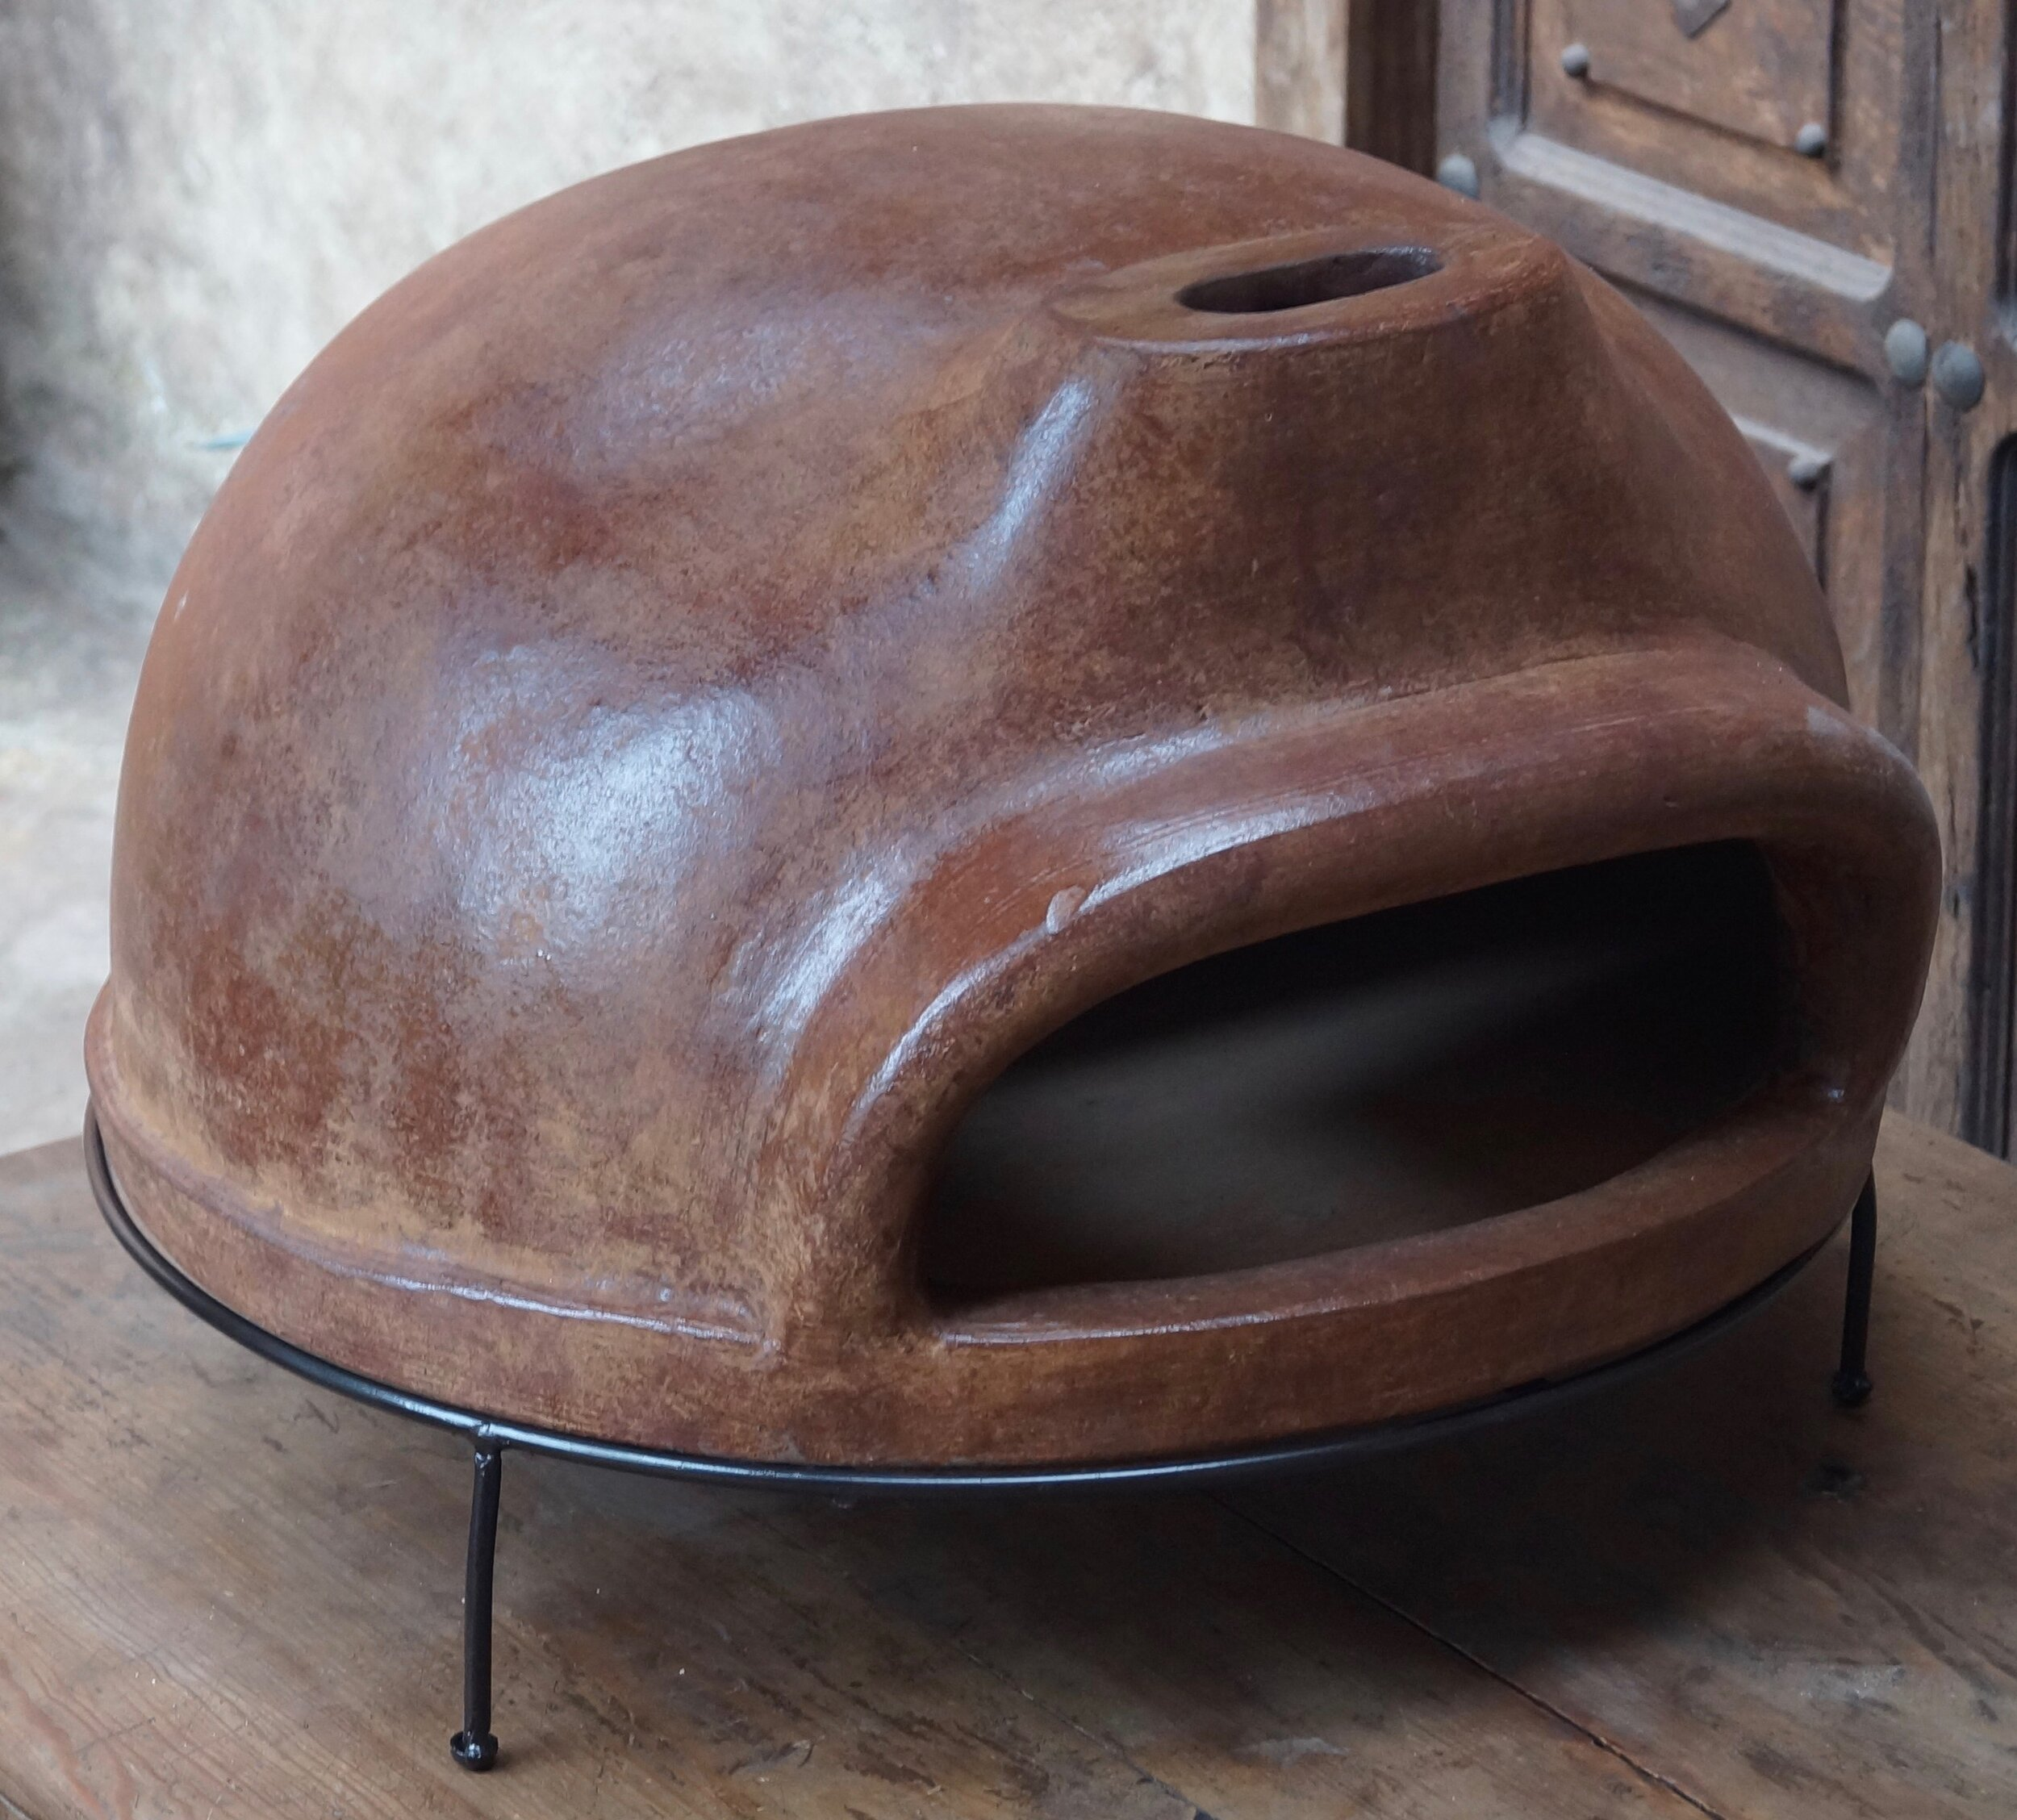 """Art. nr. 085BRY. Wood-fired stone pizza oven ø67cm with iron base and protective bag included. Packed in wooden crate - 4 per pallet 80x80x198cm  Wholesale price Ex-Netherlands: 130 Euro + VAT  Containerprice Mexico: USD 109 in 20ft (200pc) or USD 98 in 40""""HC (480pc).  Mix products in your pallet- or container order."""